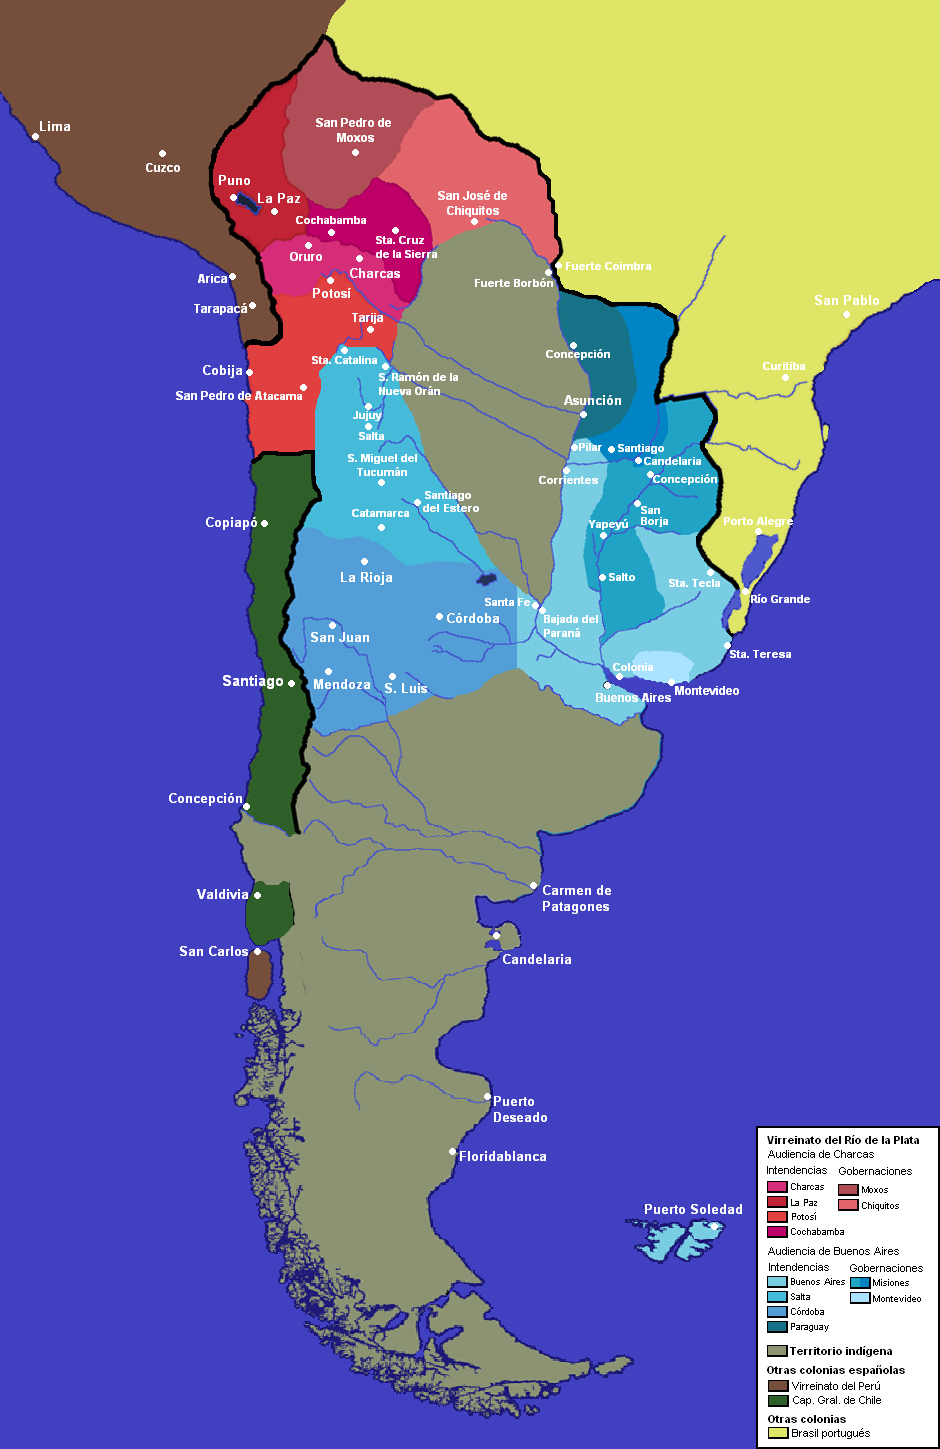 Viceroyalty of the Río de La Plata administrative divisions